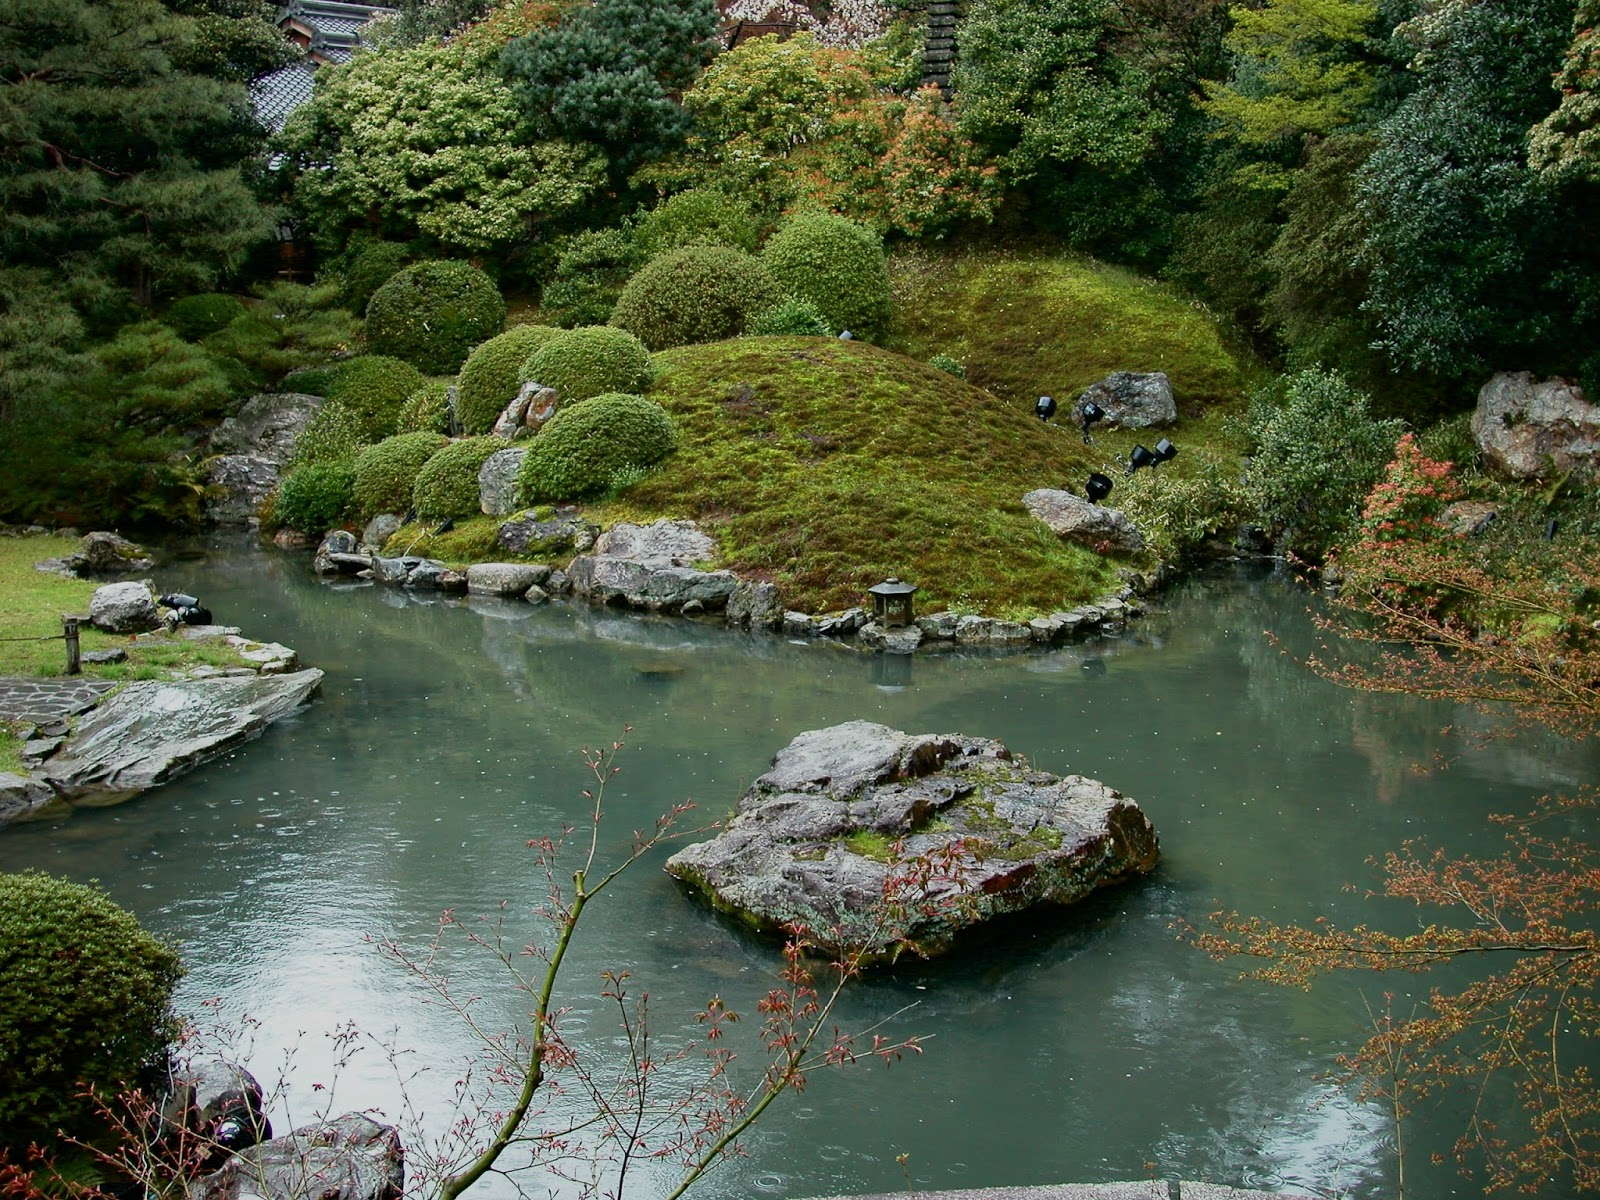 Robert ketchell 39 s blog water and the japanese garden for Japanese garden water